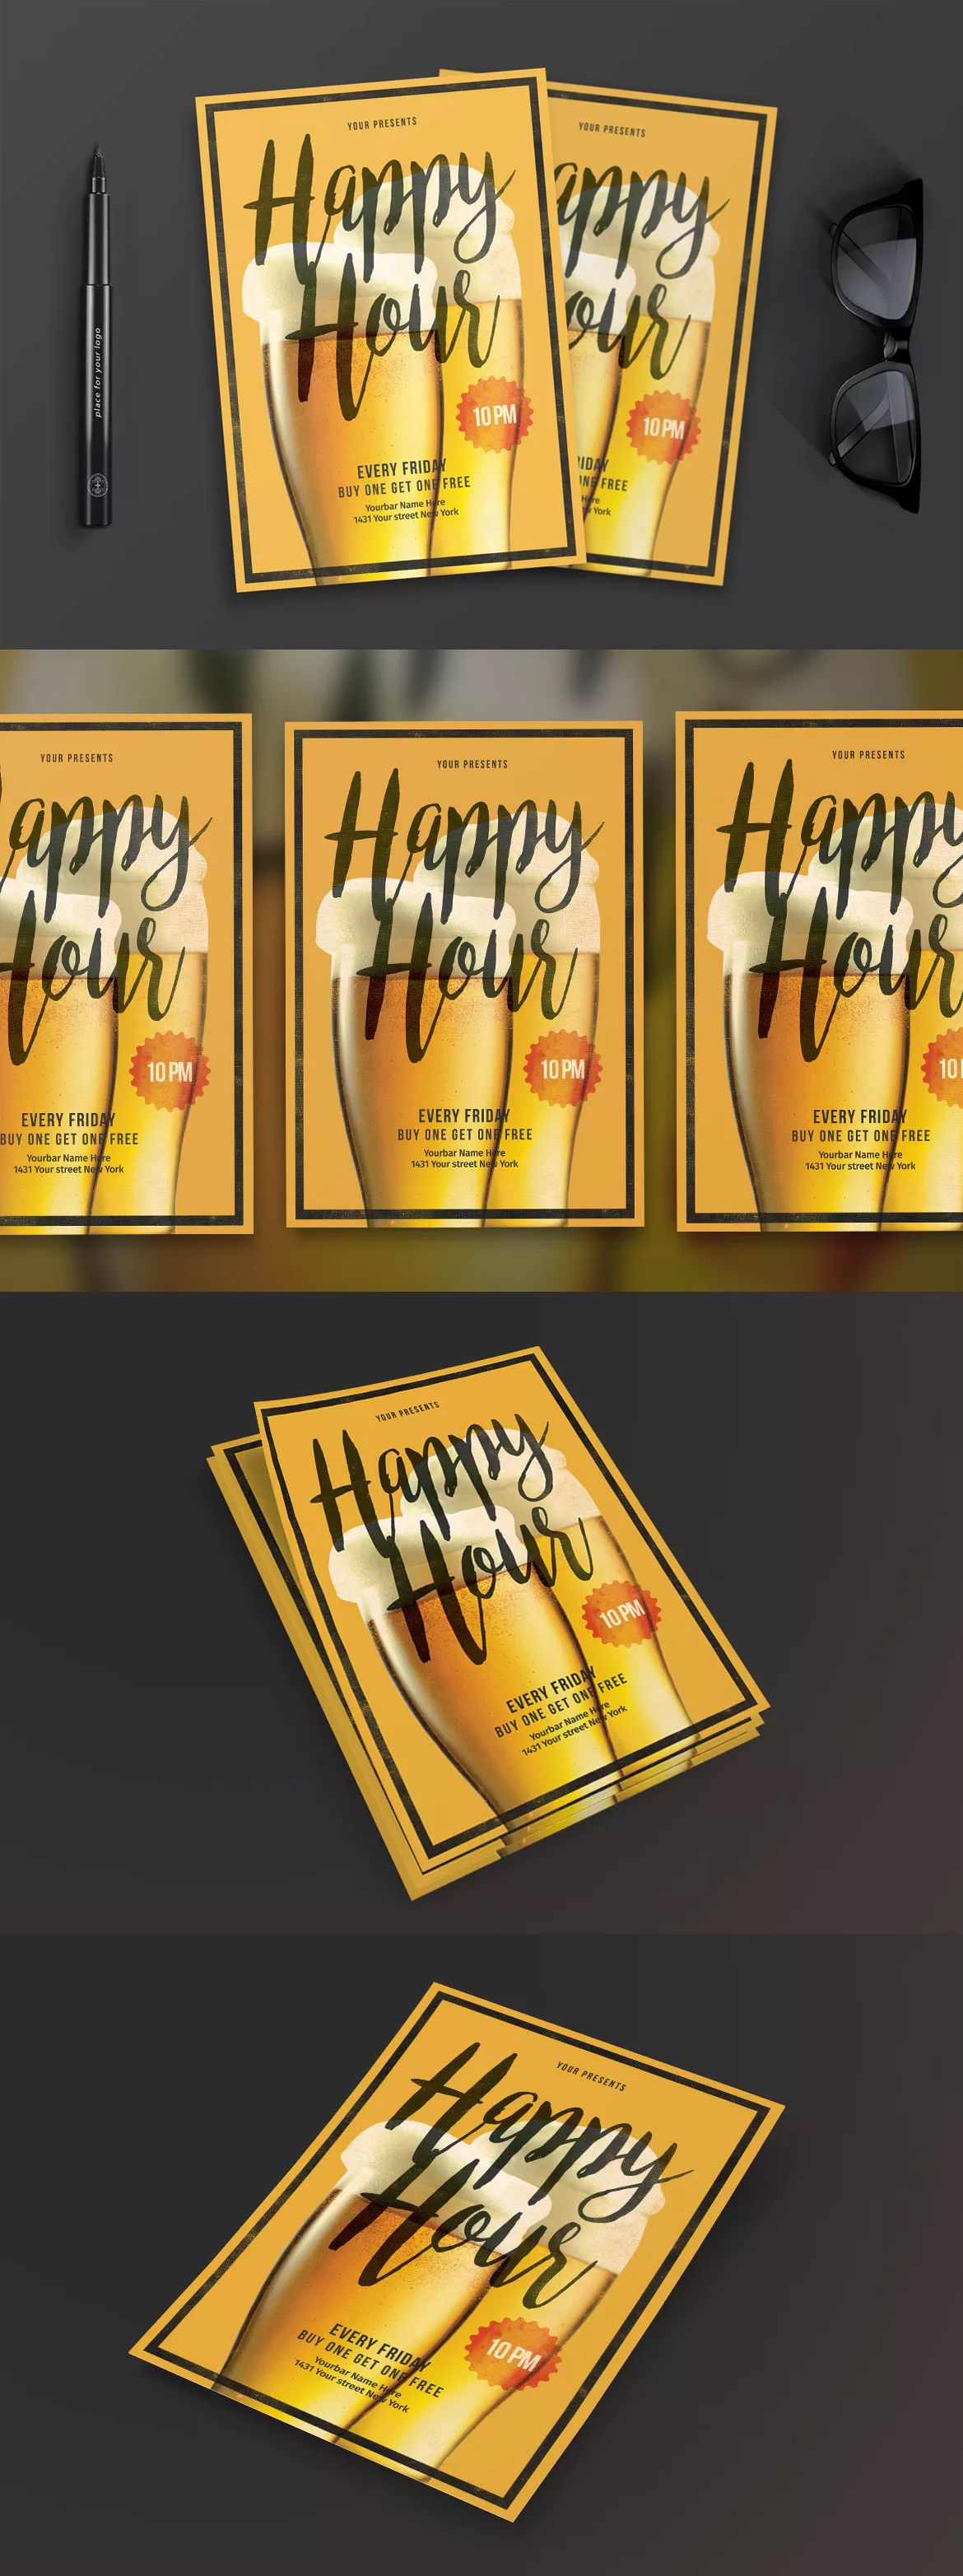 Happy Hour Flyer Template Psd Flyer Design Templates Pinterest